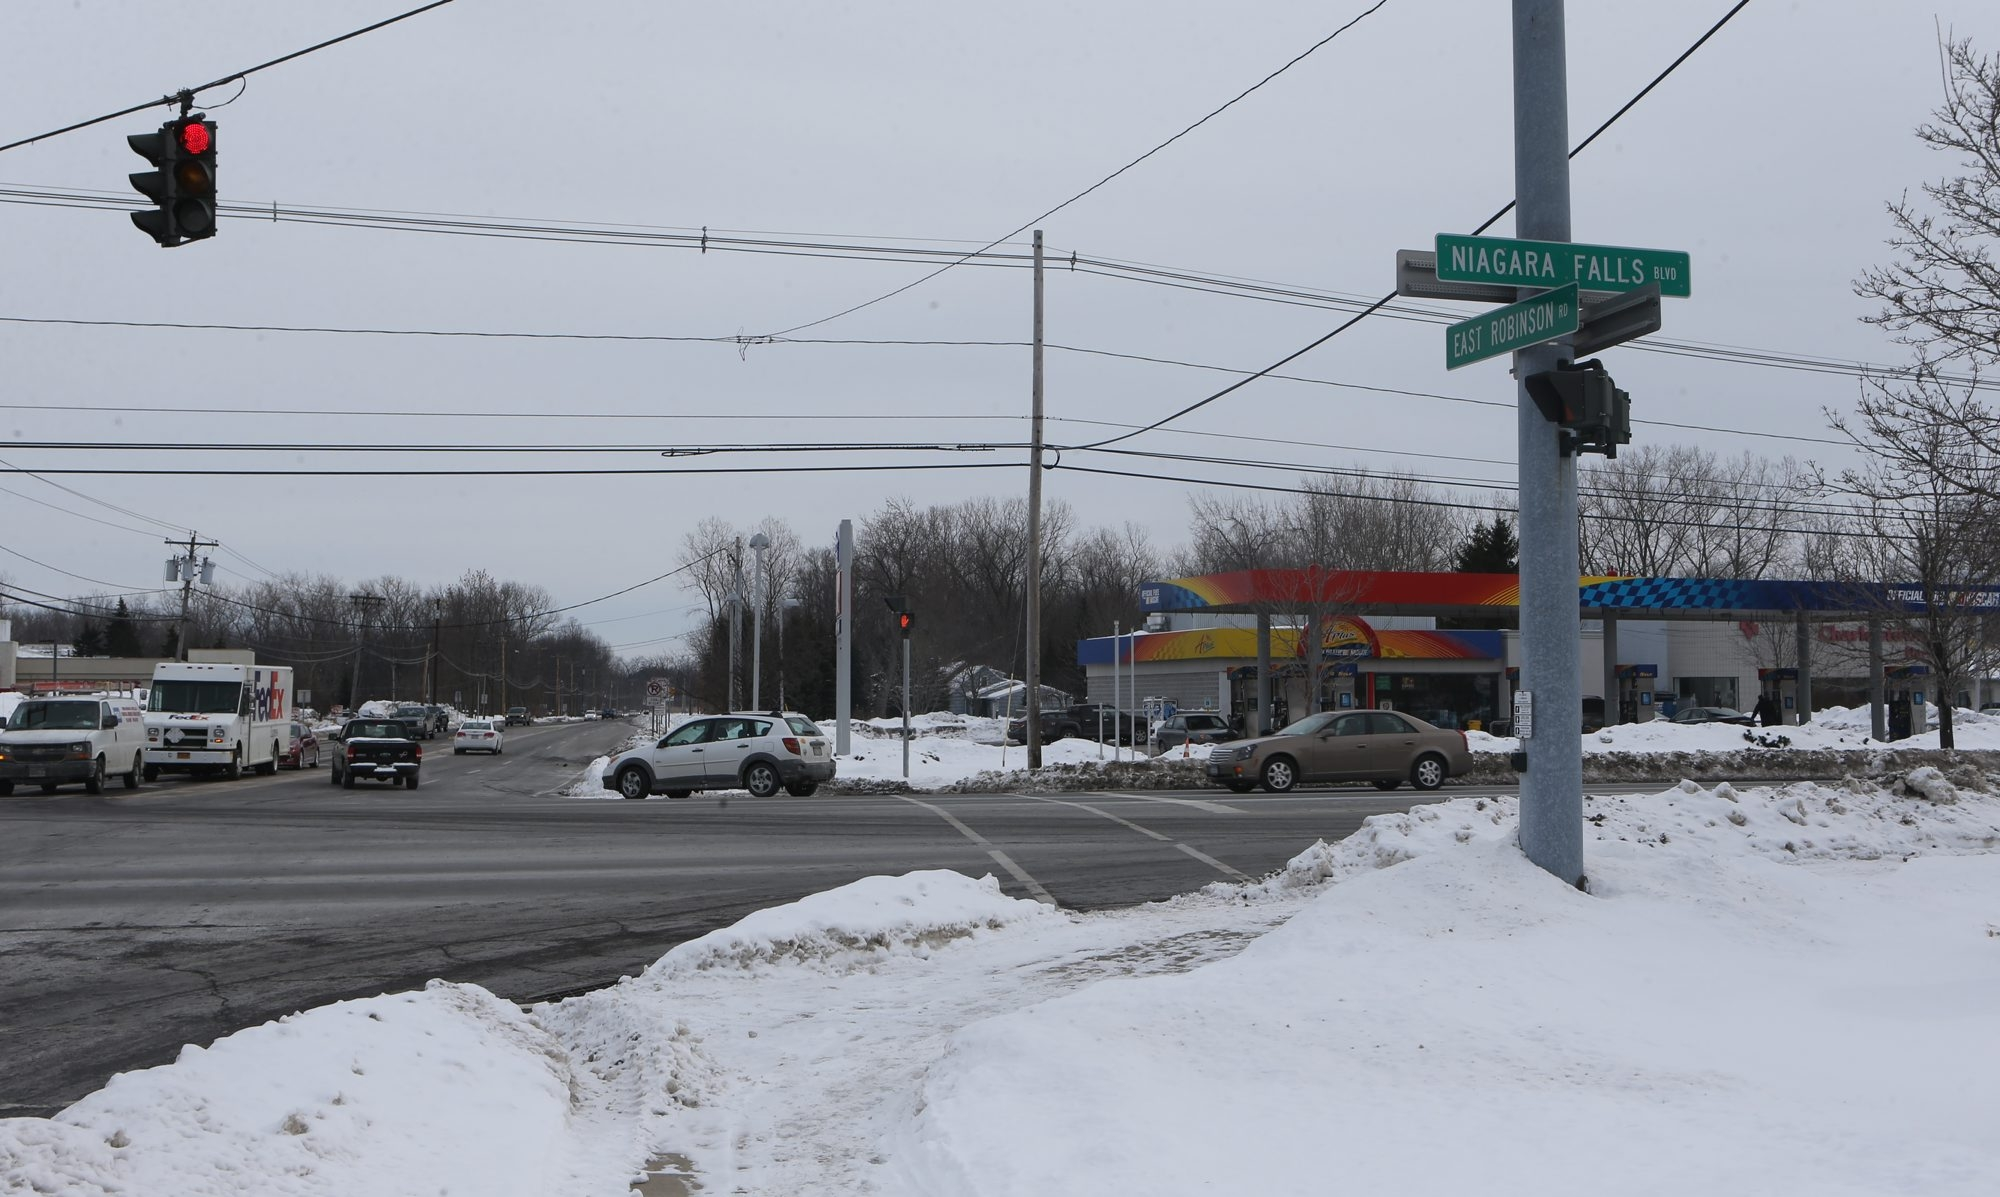 A pedestrian was struck by a car and killed while attempting to cross Niagara Falls Boulevard near the intersection of East Robinson Road in Amherst on Wednesday night.